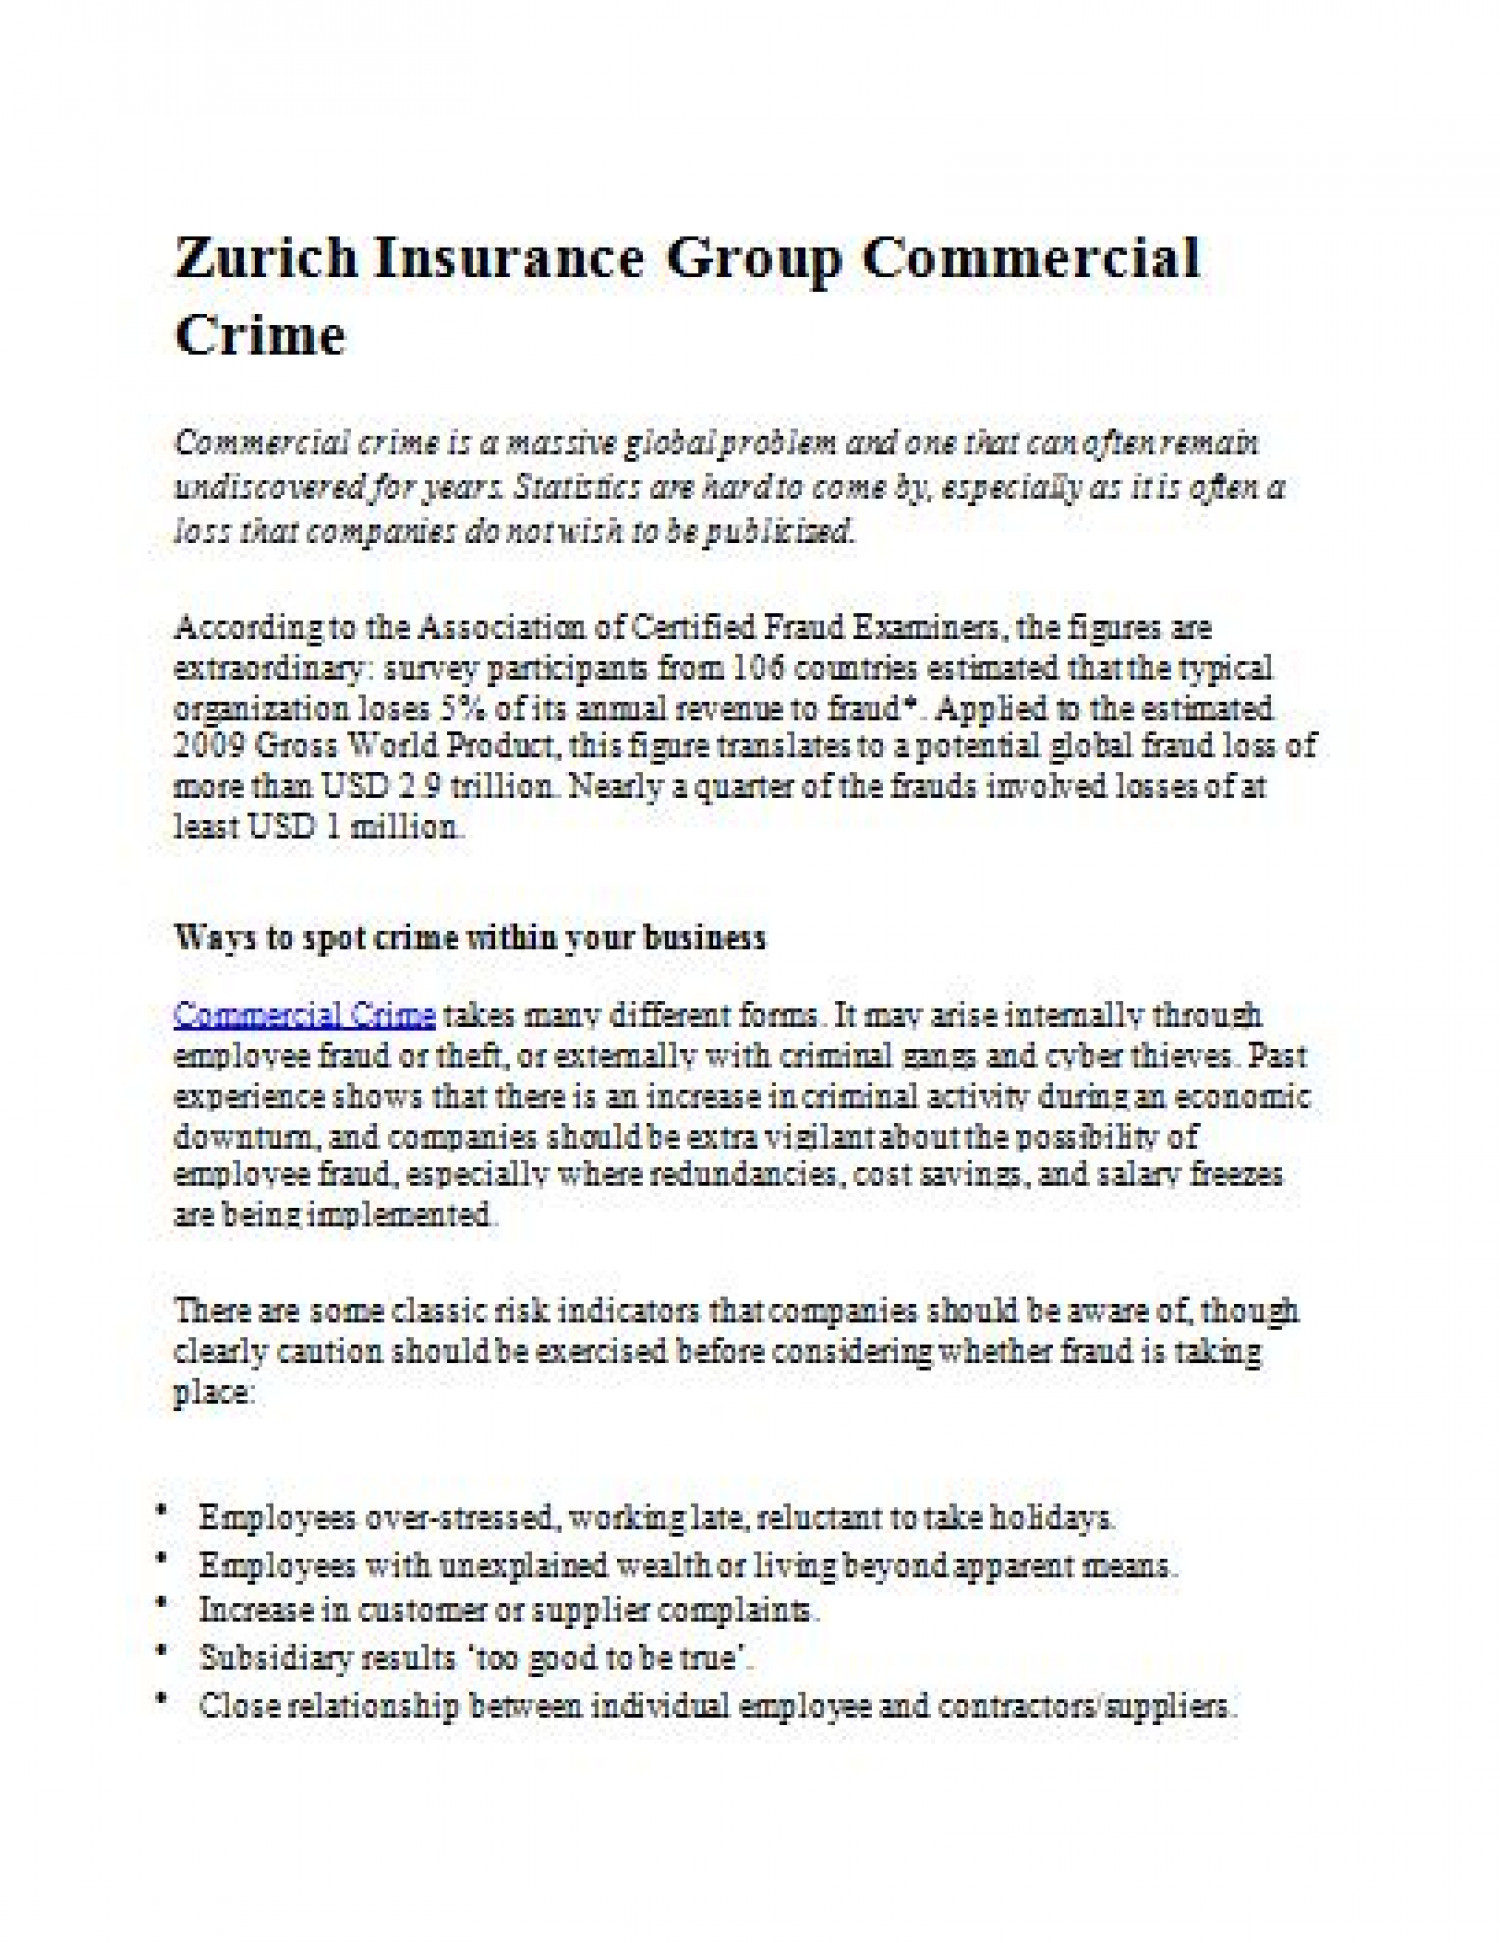 Zurich Insurance Group Commercial Crime  Infographic